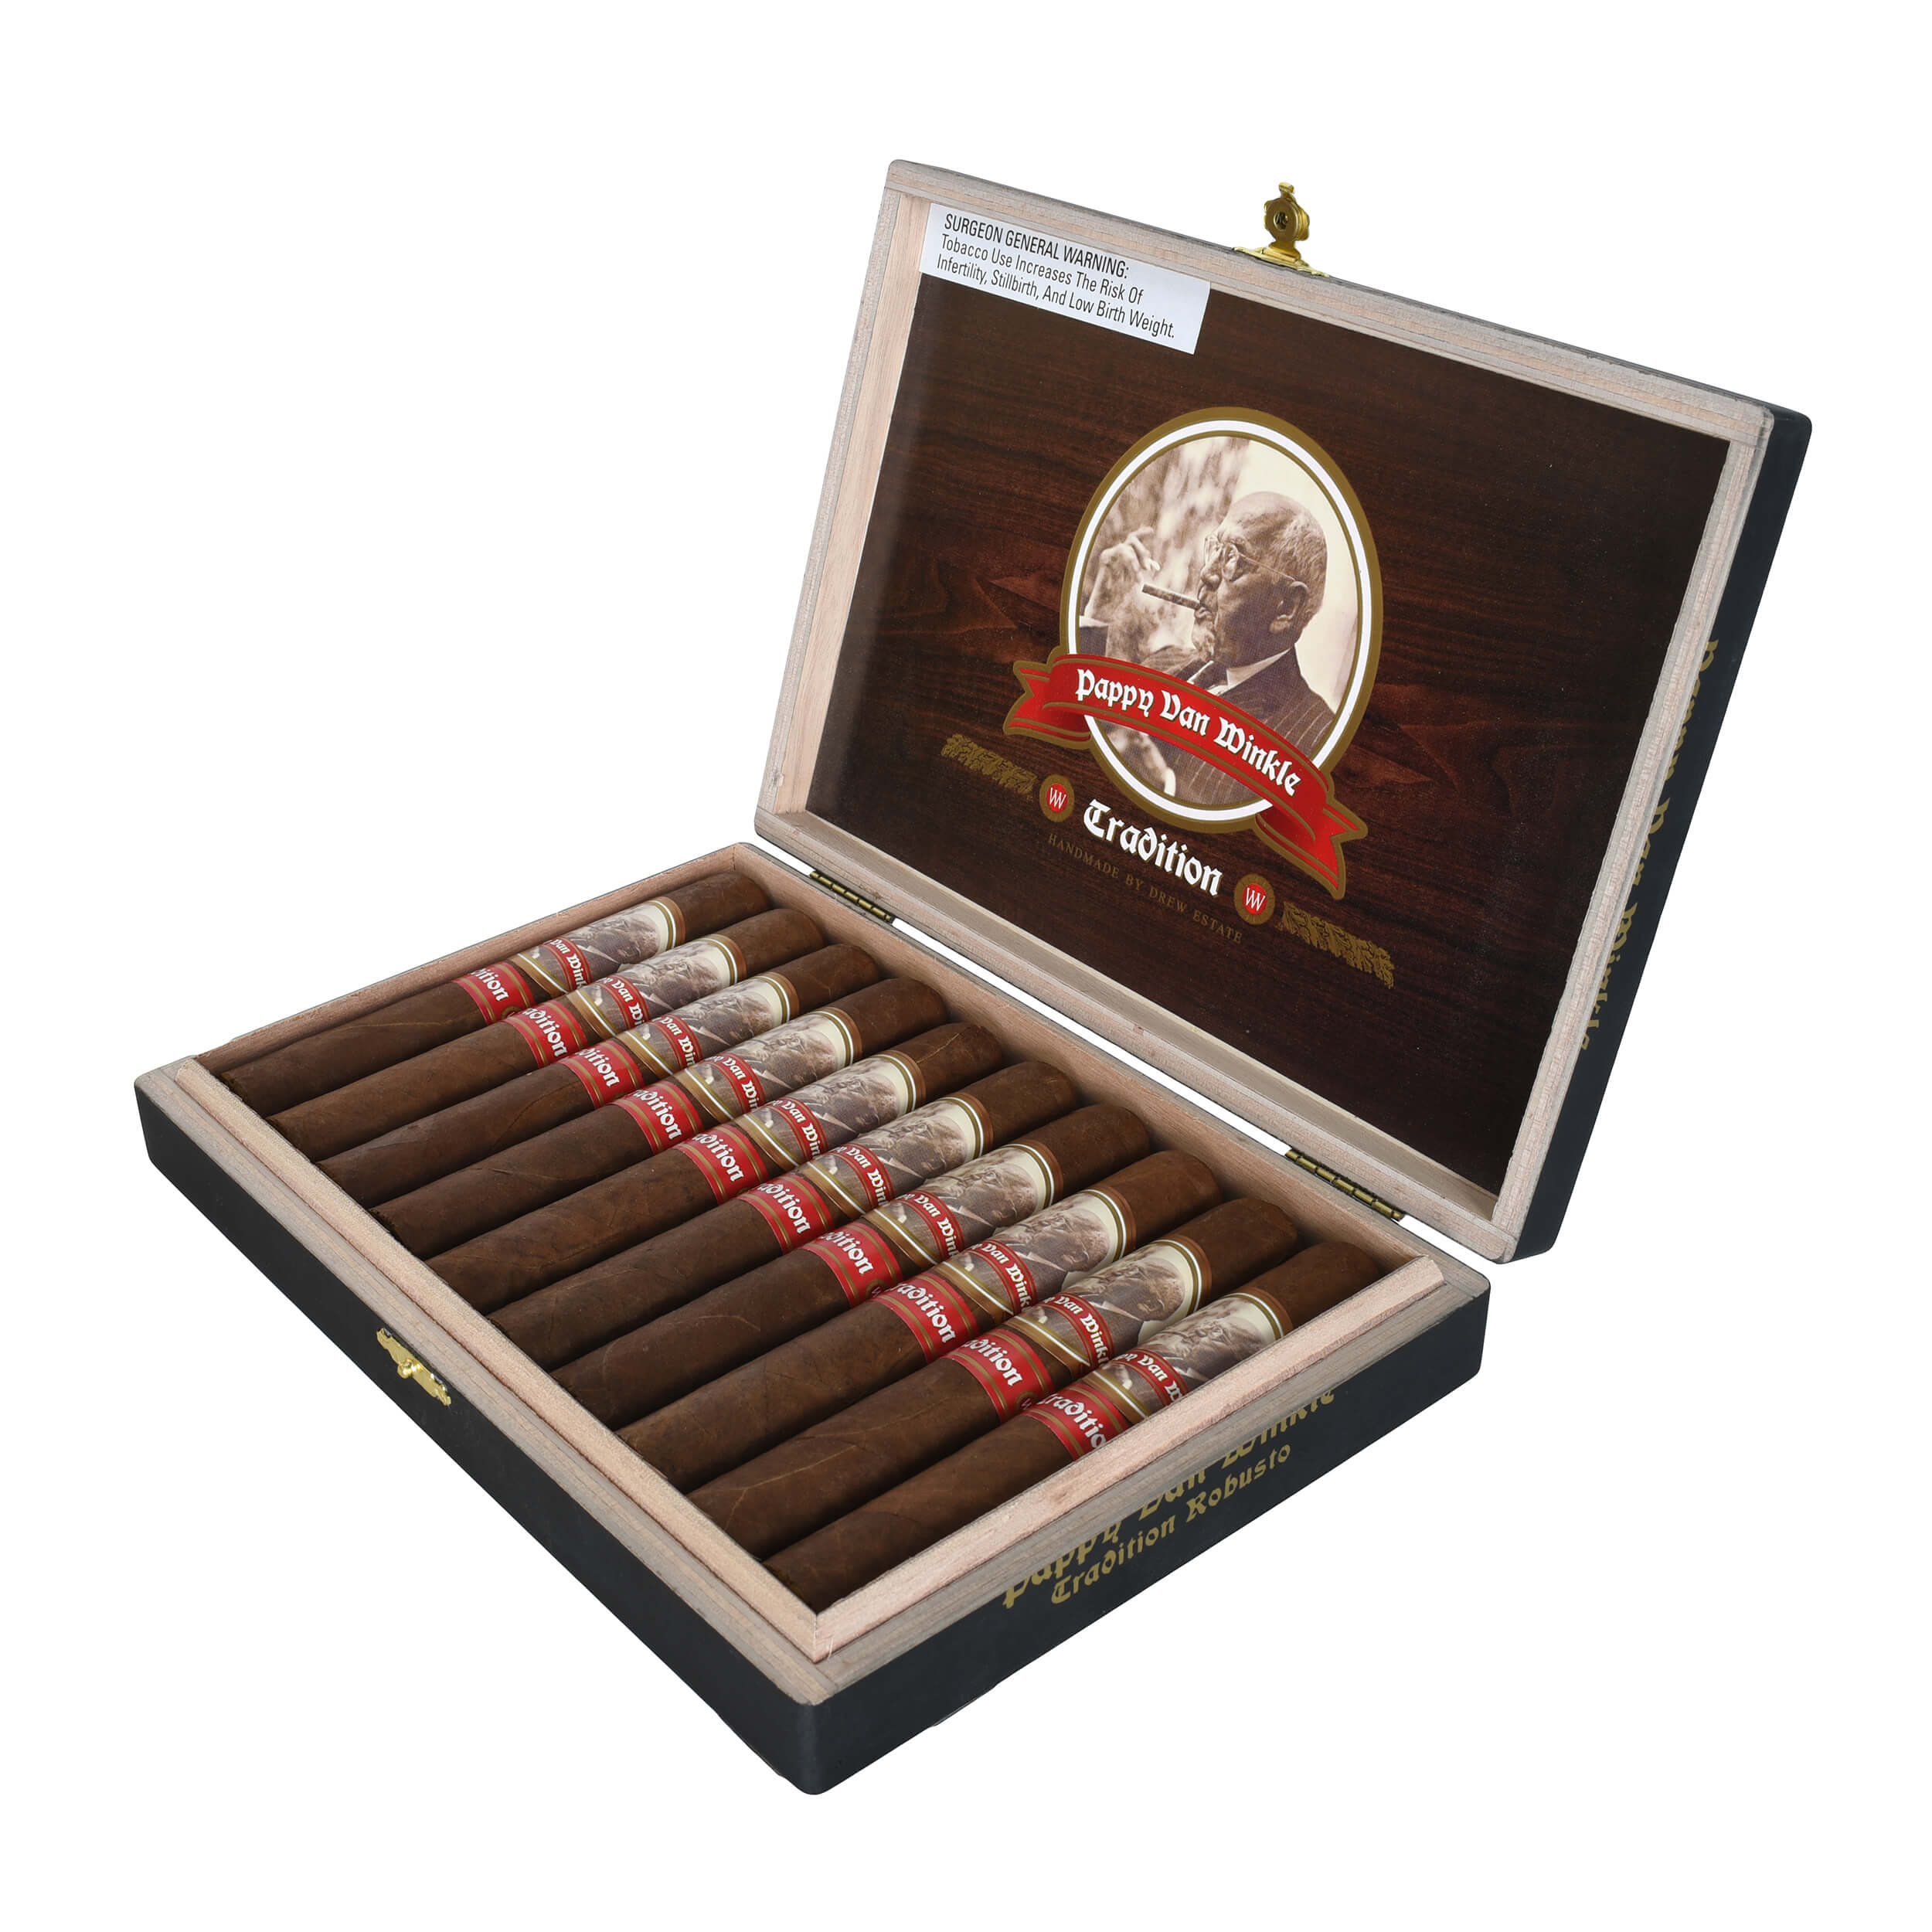 "Cigar News: Drew Estate Pappy Van Winkle ""Tradition"" Gets New Distribution/Price Cut"